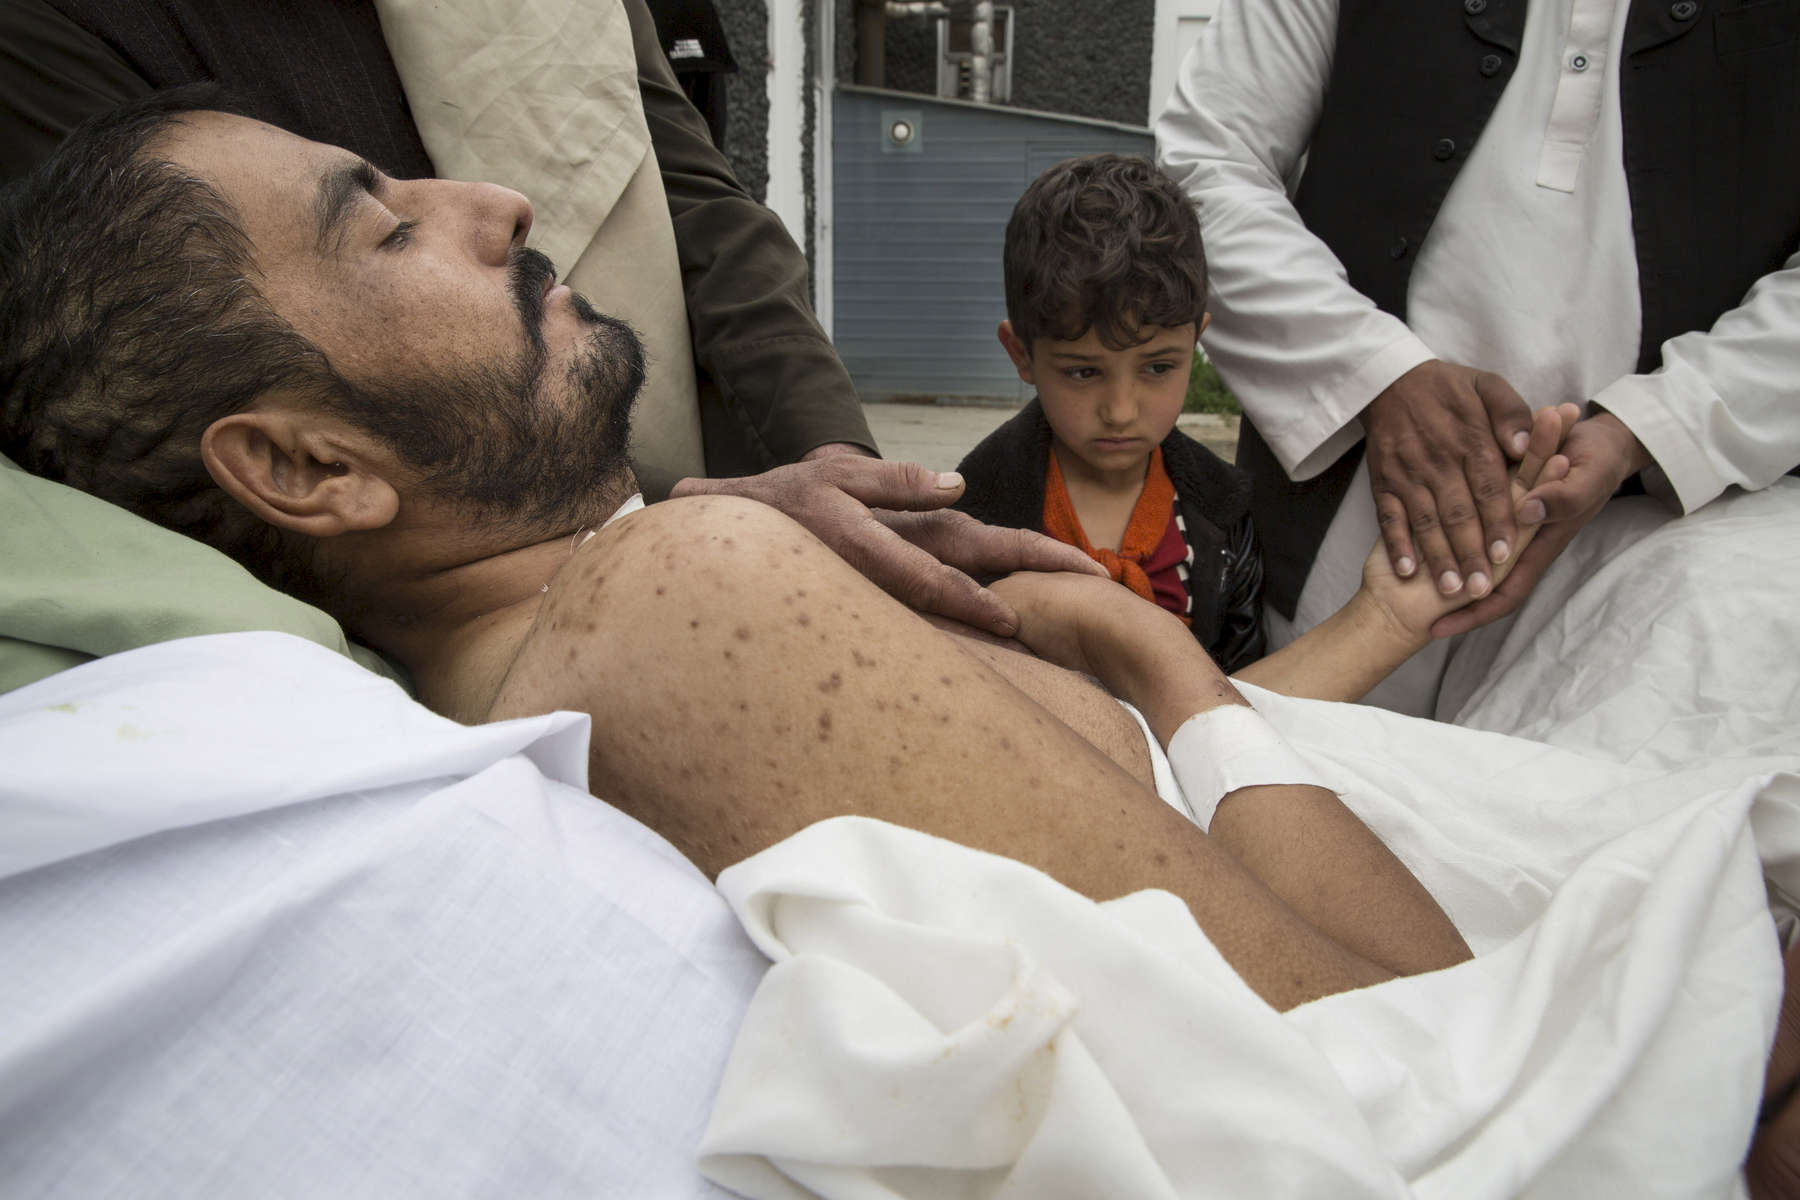 KABUL, AFGHANISTAN -MARCH 28, 2016: Khair Mohammed, 35, a paraplegic lays in bed outside his ward as friends and relatives visit him at the emergency hospital as his daughter Madina ,6, looks sadly at her father in Kabul on March 28, 2016. Khair just escaped death after taking 3 bullets to his abdomen and skull. Afghan civilians are at greater risk today than at any time since Taliban rule. According to UN statistics, in the first half of 2016 at least 1,600 people had died, and more than 3,500 people were injured, a 4 per cent increase in overall civilian causalities compared to the same period last year. The upsurge in violence has had devastating consequences for civilians, with suicide bombings and targeted attacks by the Taliban and other insurgents causing 70 percent of all civilian casualties.